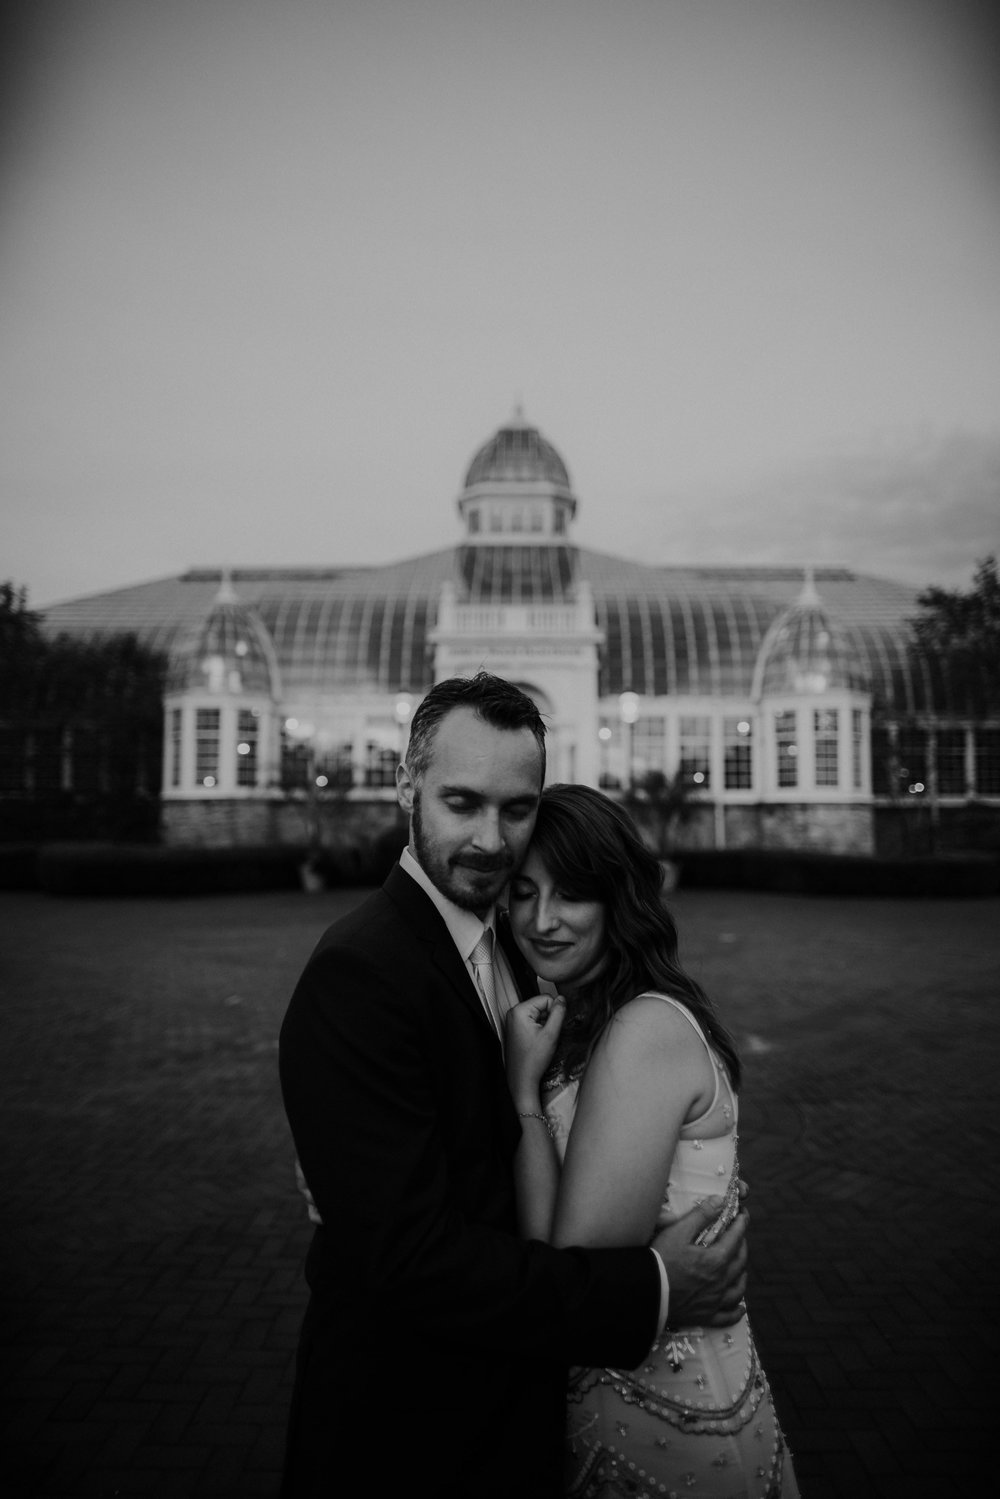 franklin park conservatory wedding columbus ohio wedding photographer grace e jones photography59.jpg